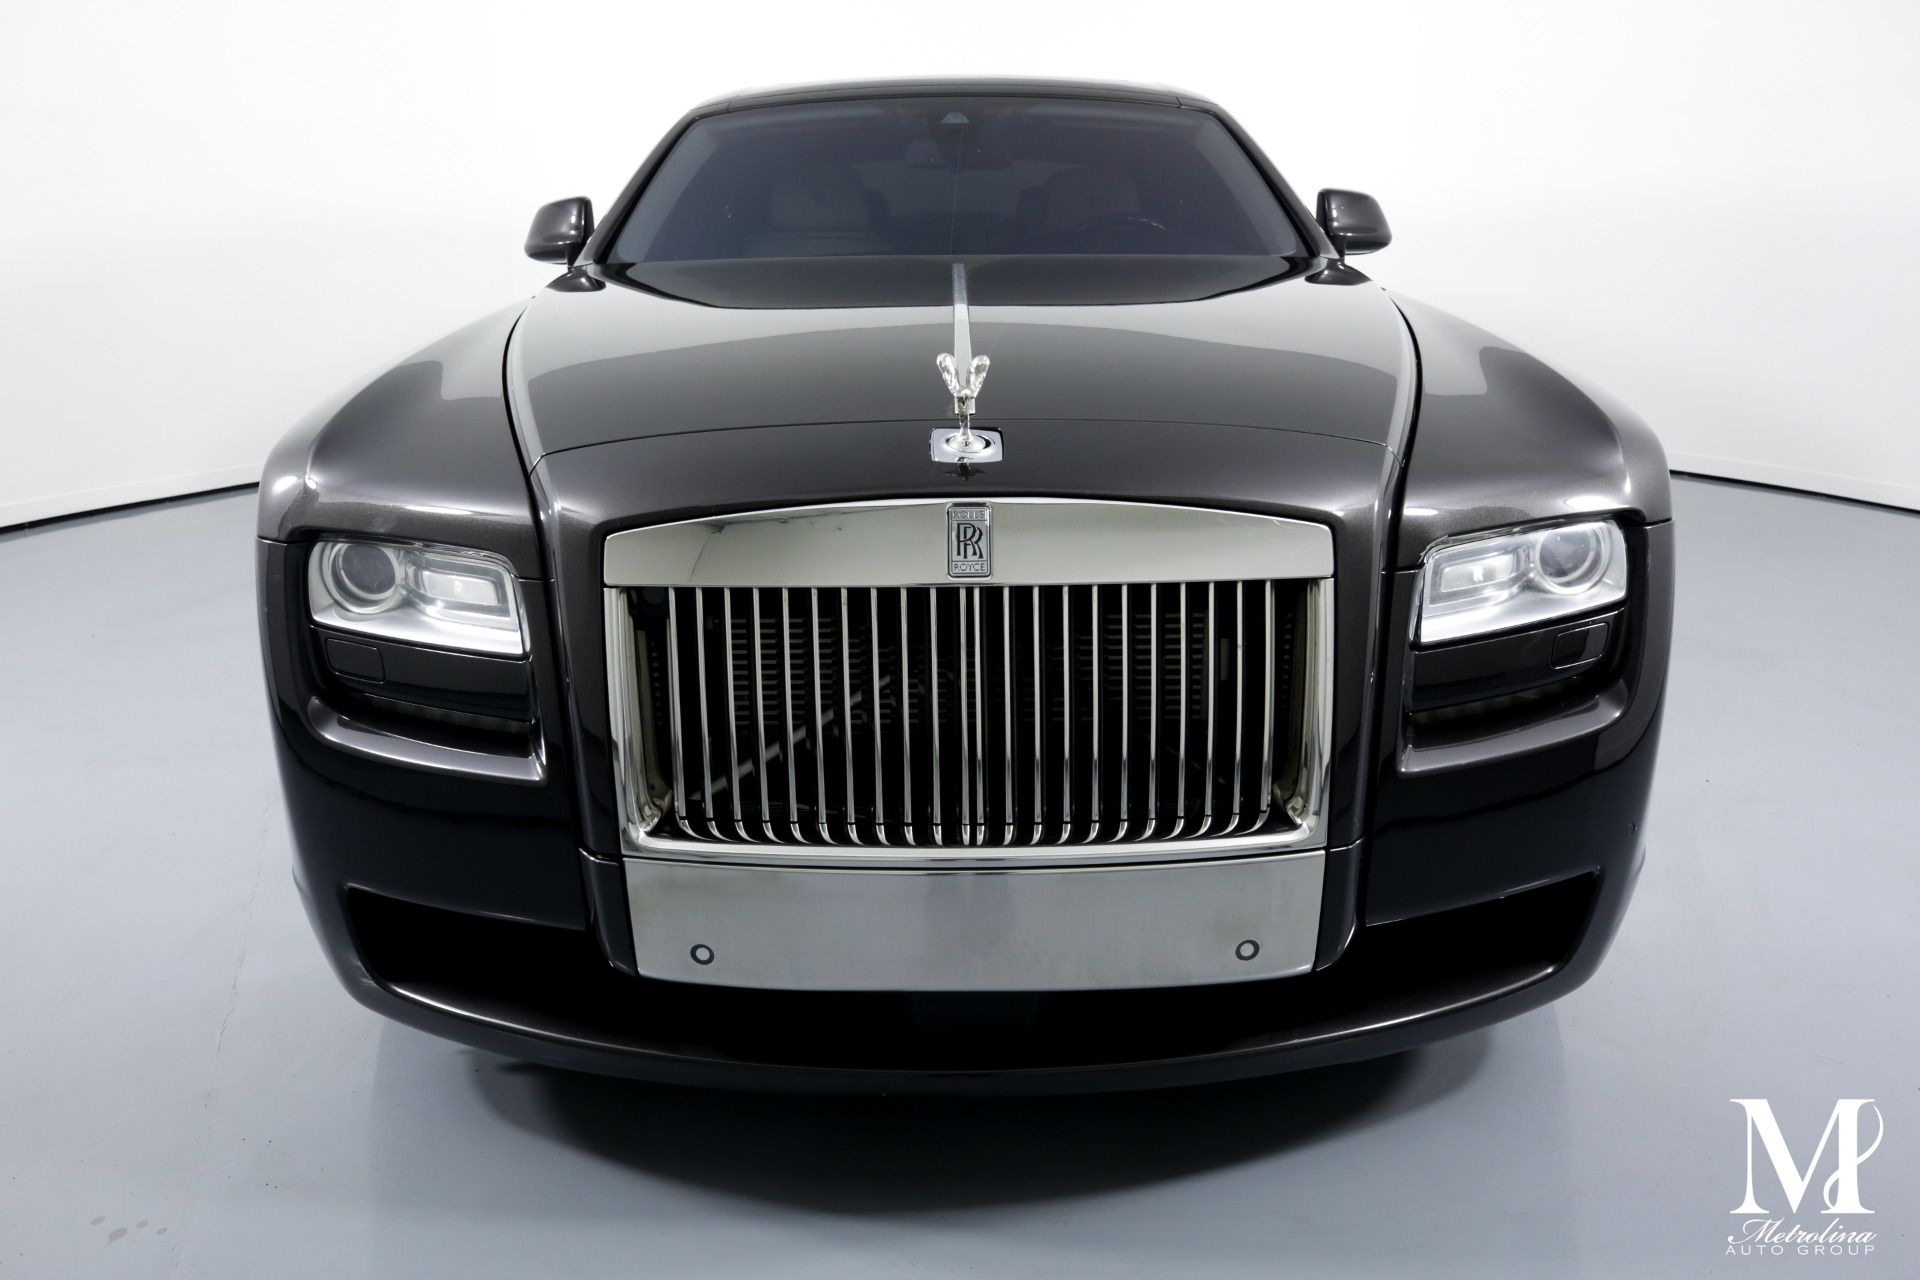 Used 2014 Rolls-Royce Ghost for sale $114,996 at Metrolina Auto Group in Charlotte NC 28217 - 3